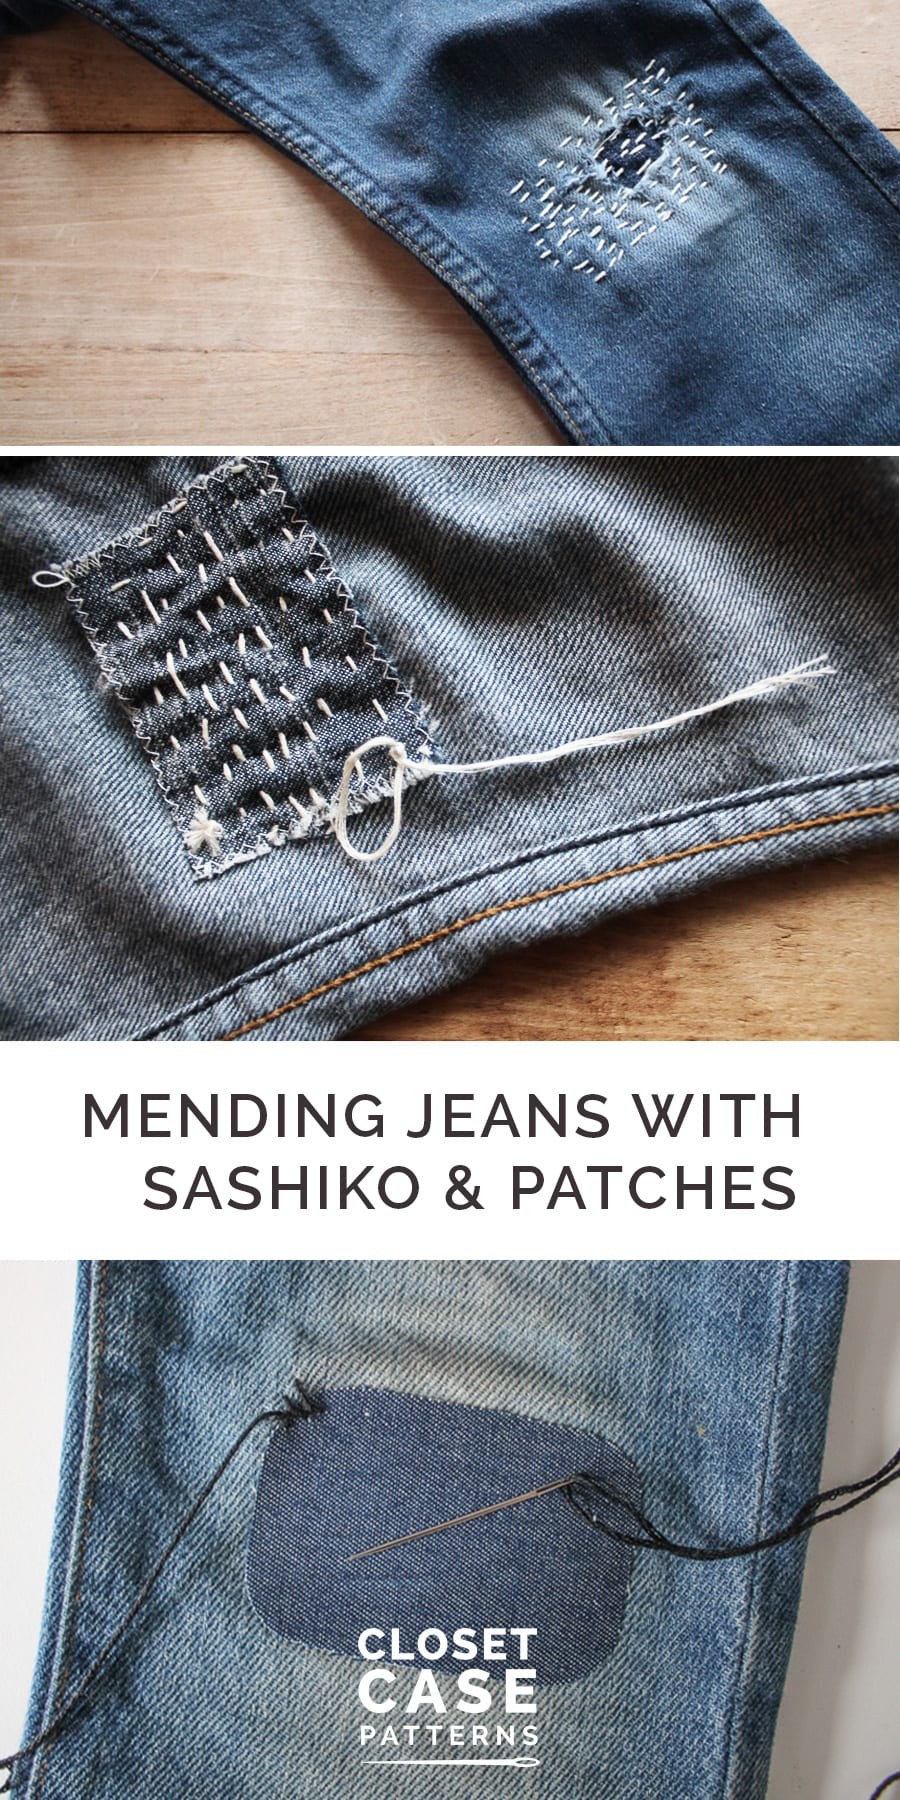 Fun and easy tutorial to mend your denim and repair your jeans with sashiko embroidery and boro patches! Sewing tutorial from Closet Case Patterns.